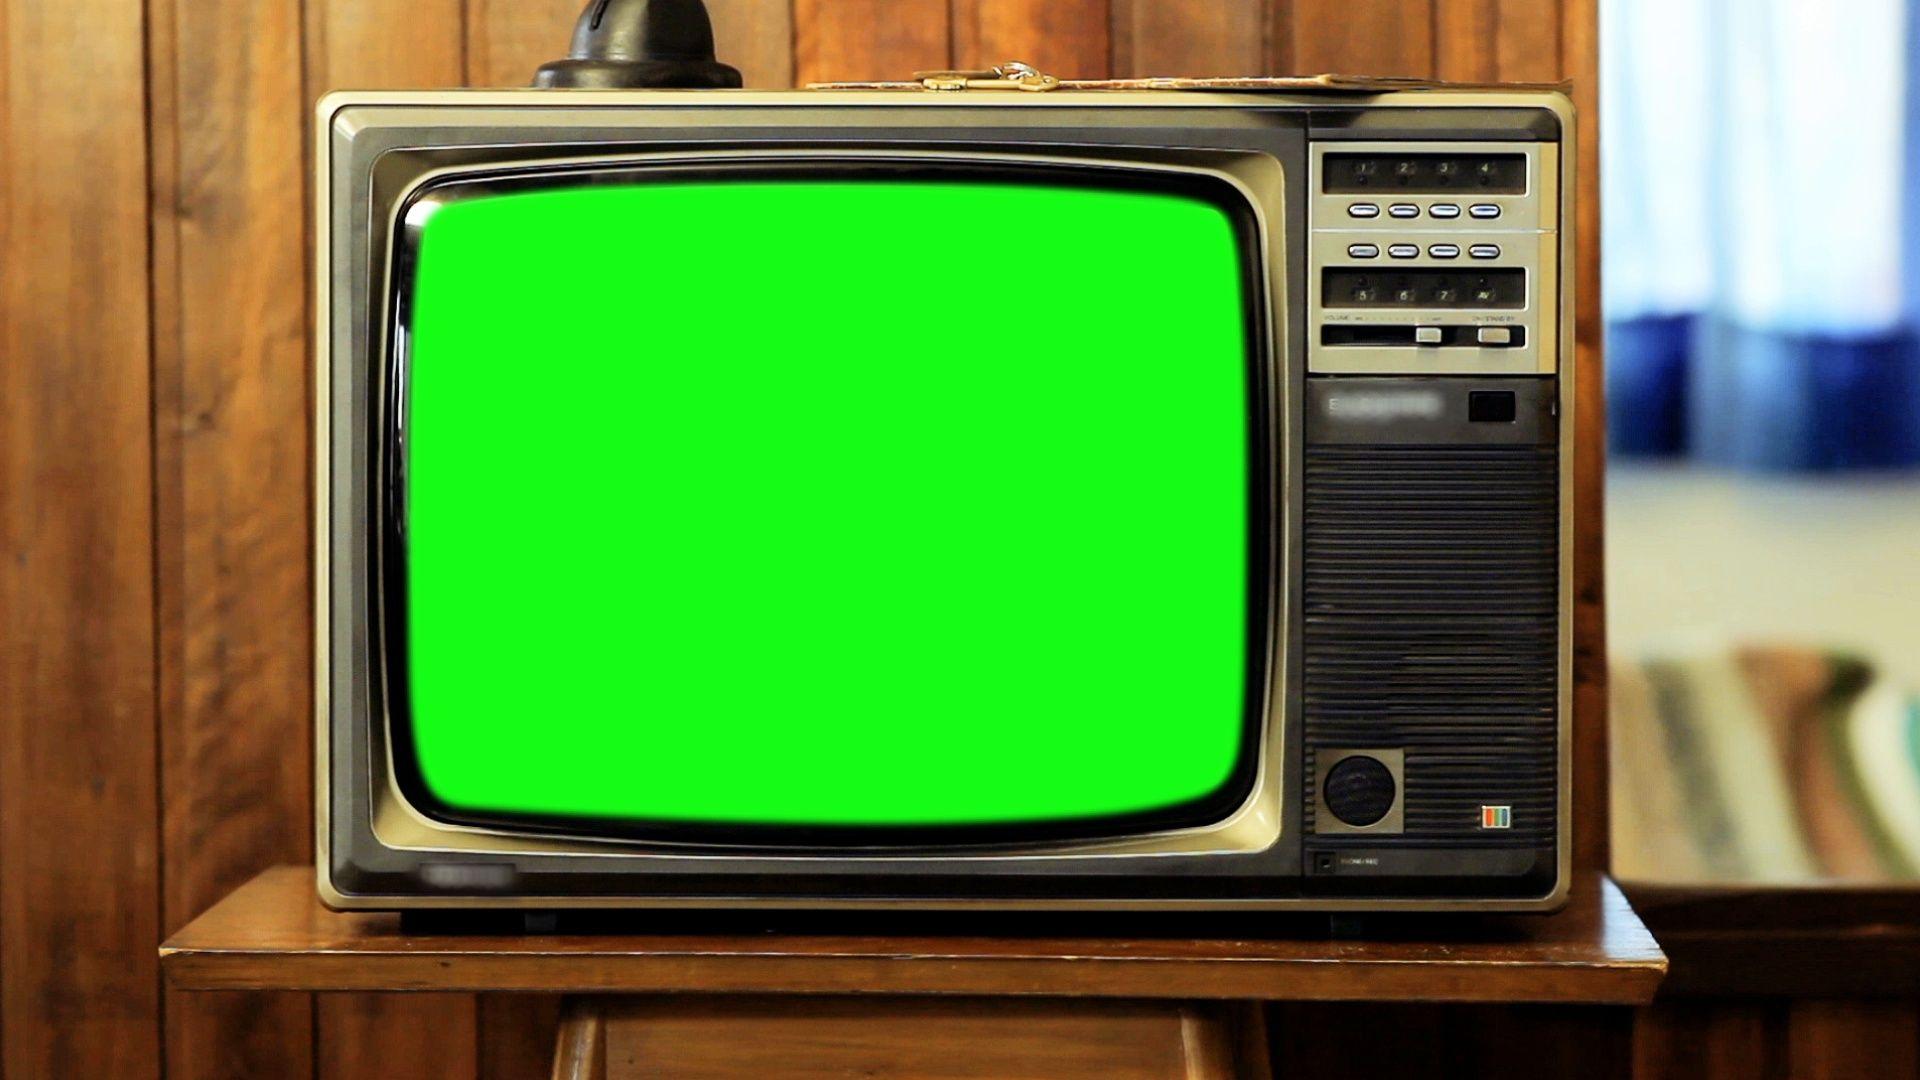 1980s Television Green Screen. Zoom In. Stock Footage,